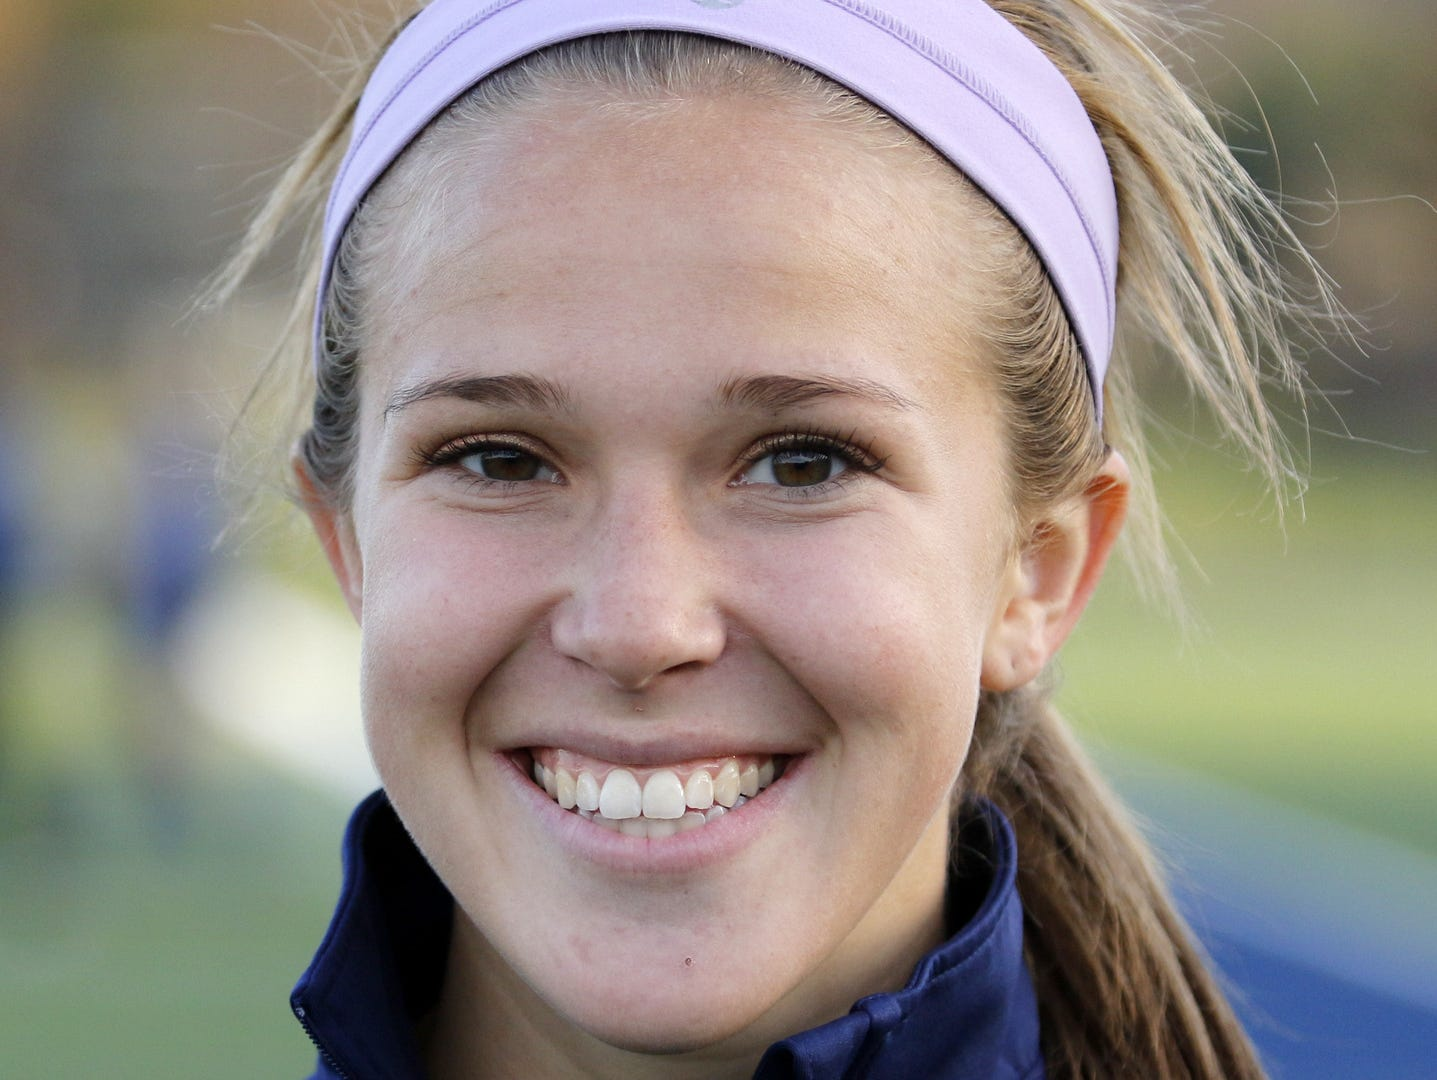 Athlete of the Week Emma Booth of the Notre Dame girls soccer team after Tuesday's sectional victory over Trumansburg.